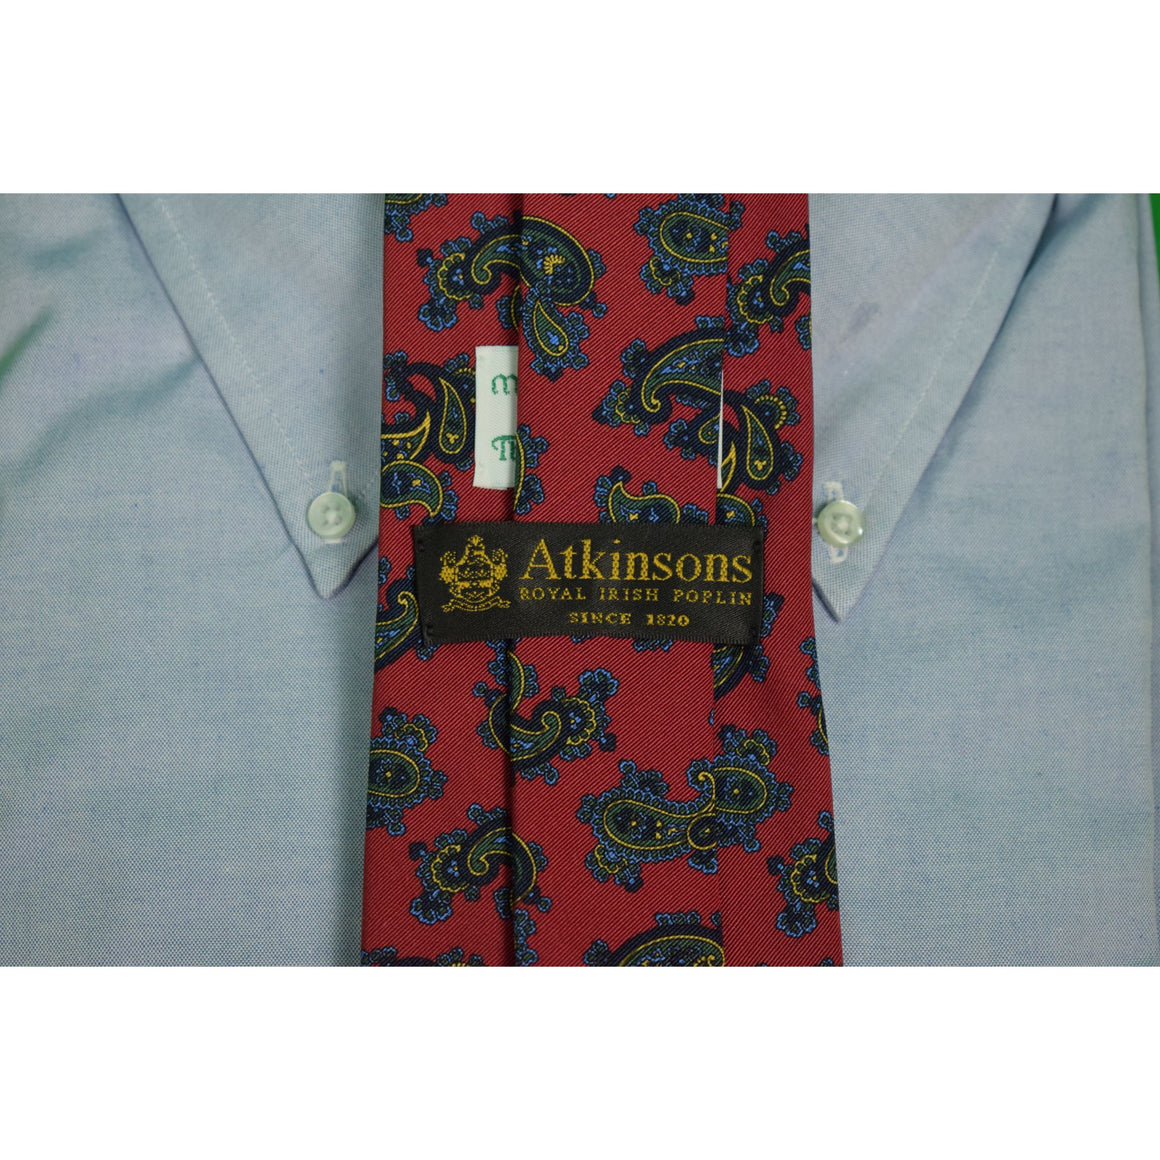 Atkinsons Royal Irish Poplin for The Andover Shop Burg Paisley Tie